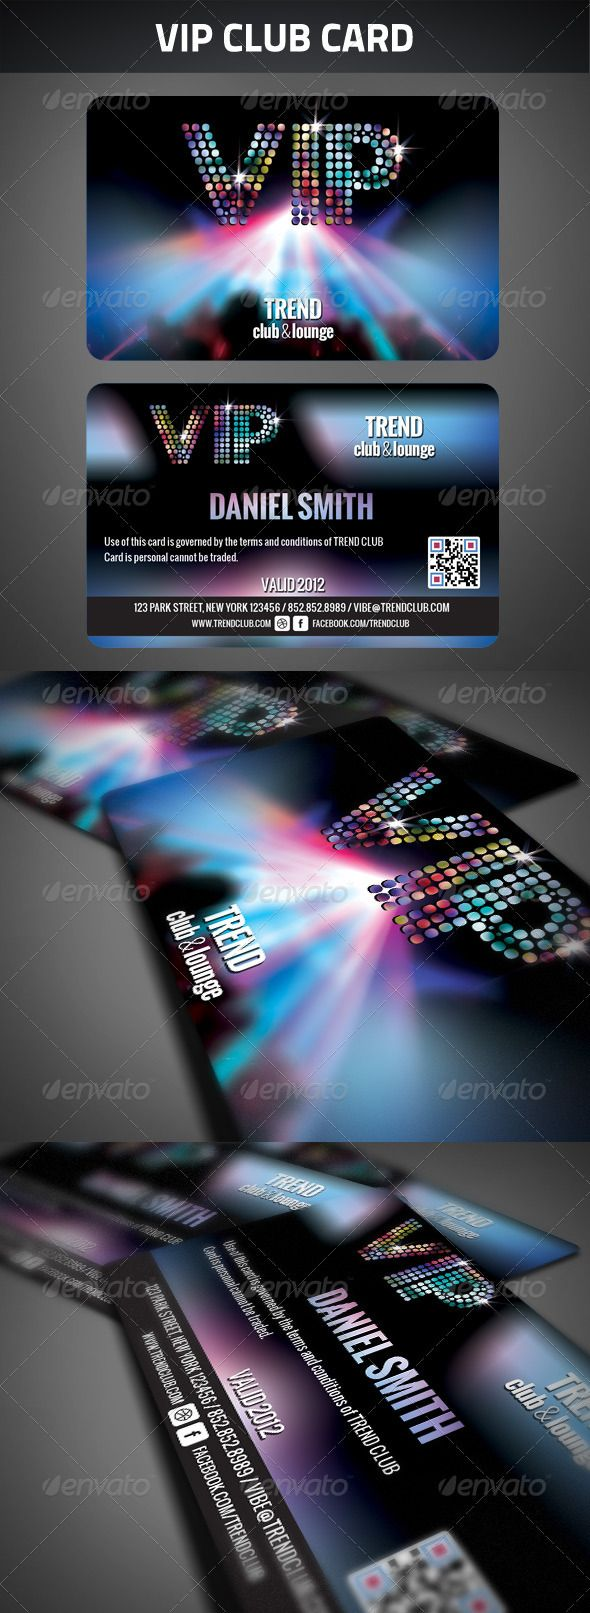 vip club membership card  graphicriver vip club membership card zip file contains 2 psd file